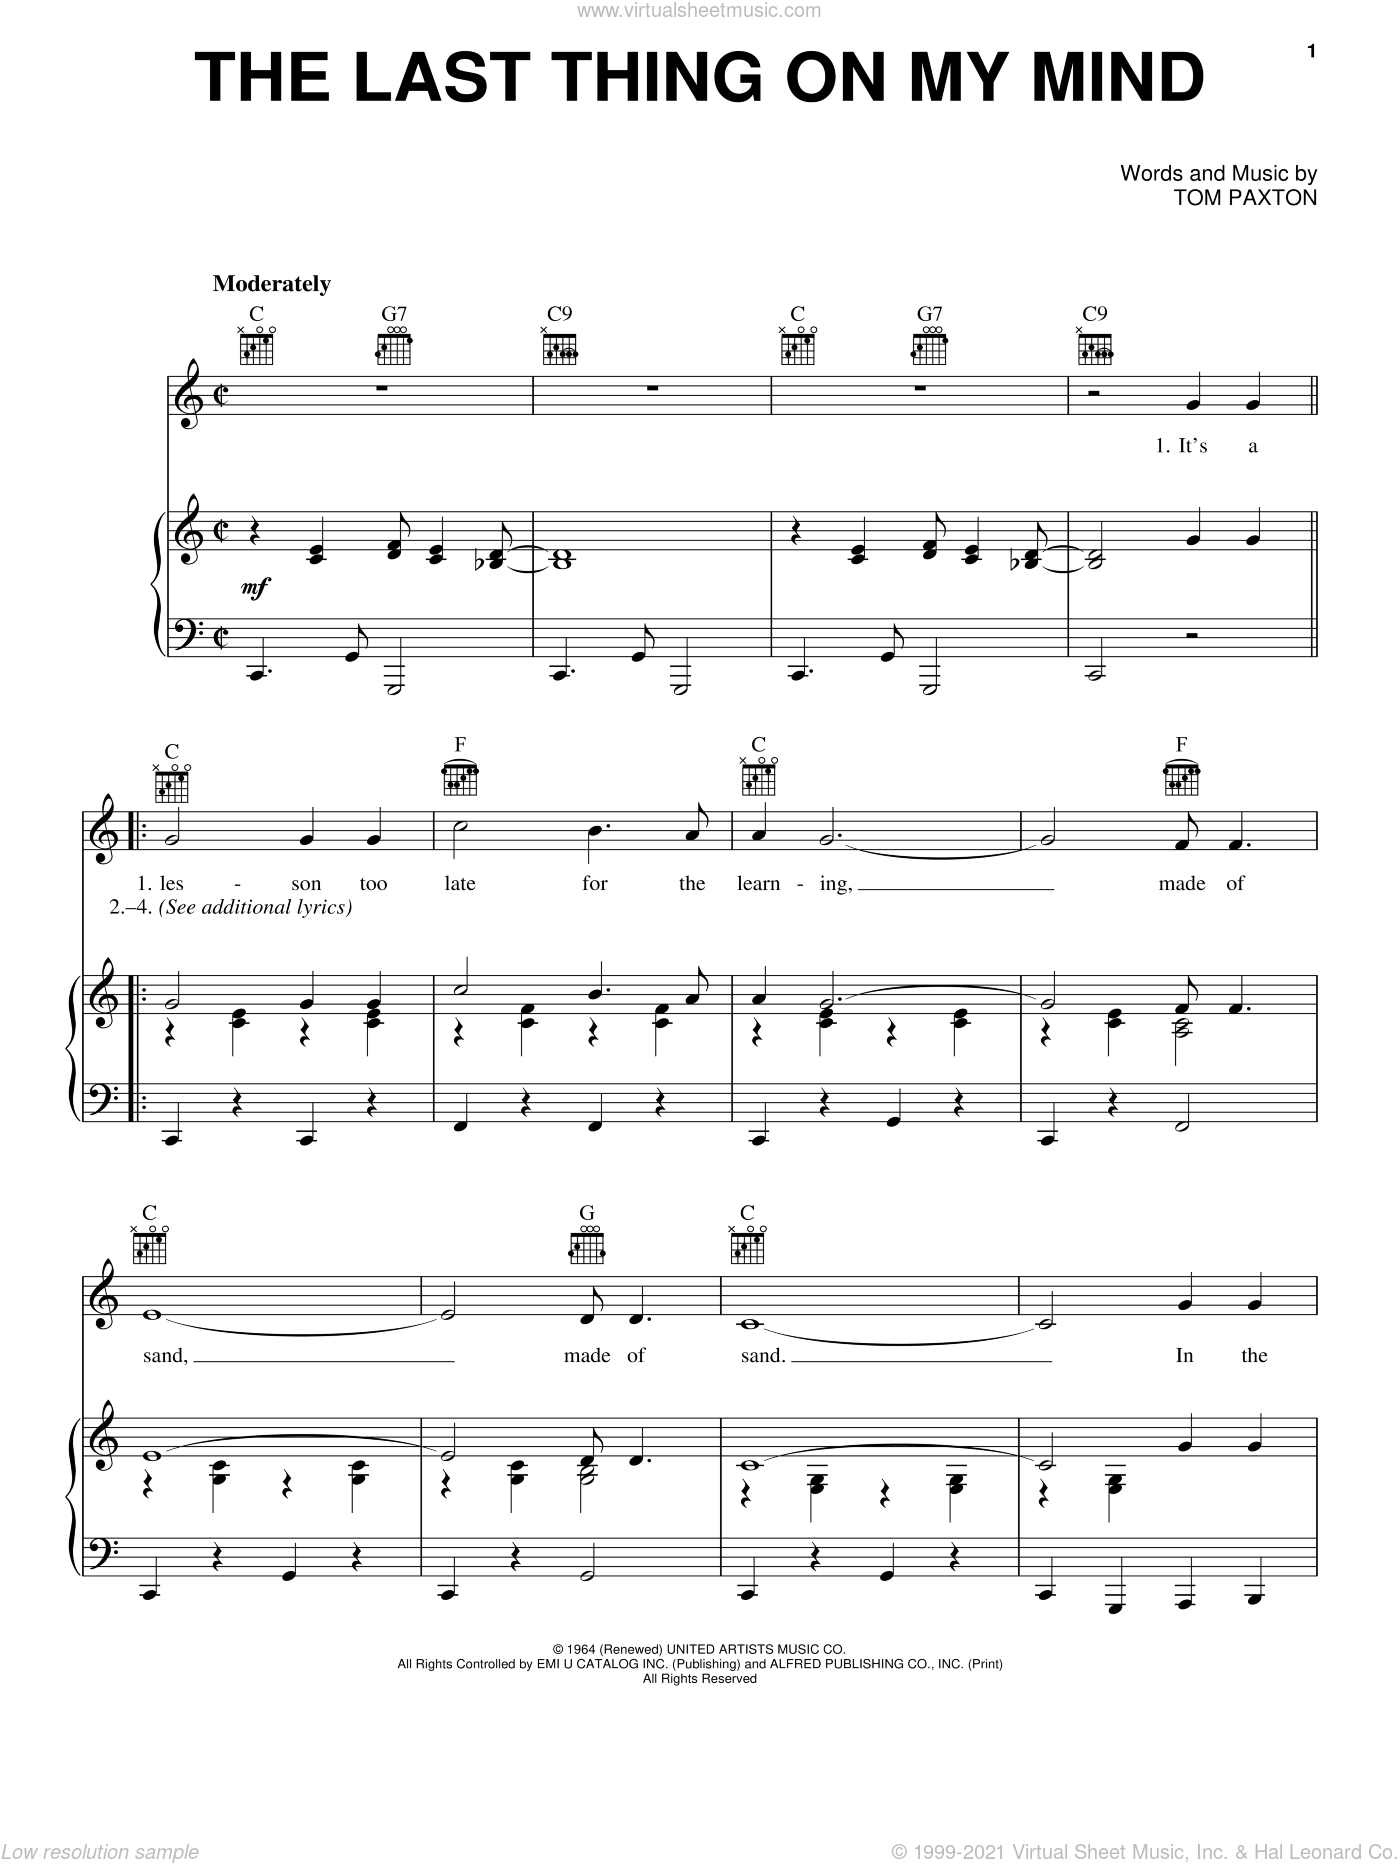 The Last Thing On My Mind sheet music for voice, piano or guitar by Tom Paxton